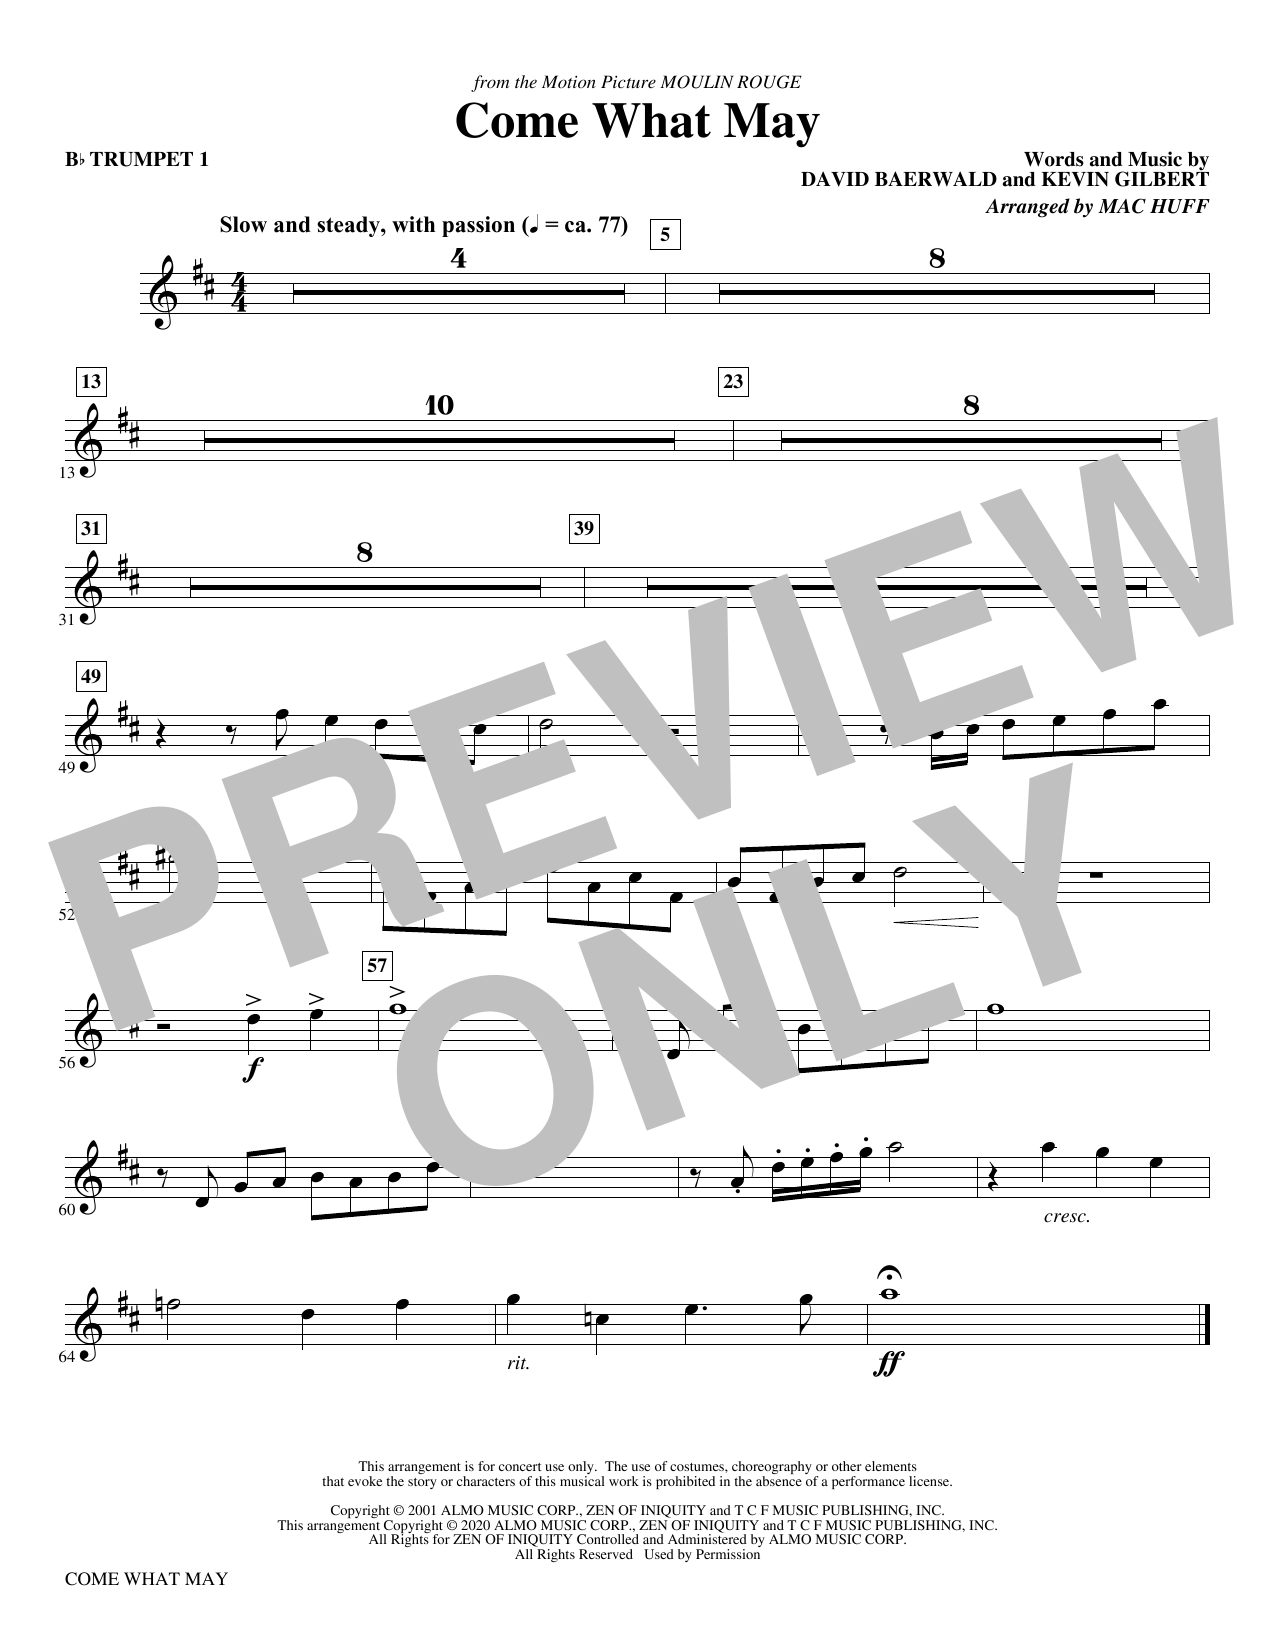 Come What May (from Moulin Rouge) (arr. Mac Huff) - Bb Trumpet 1 Sheet Music